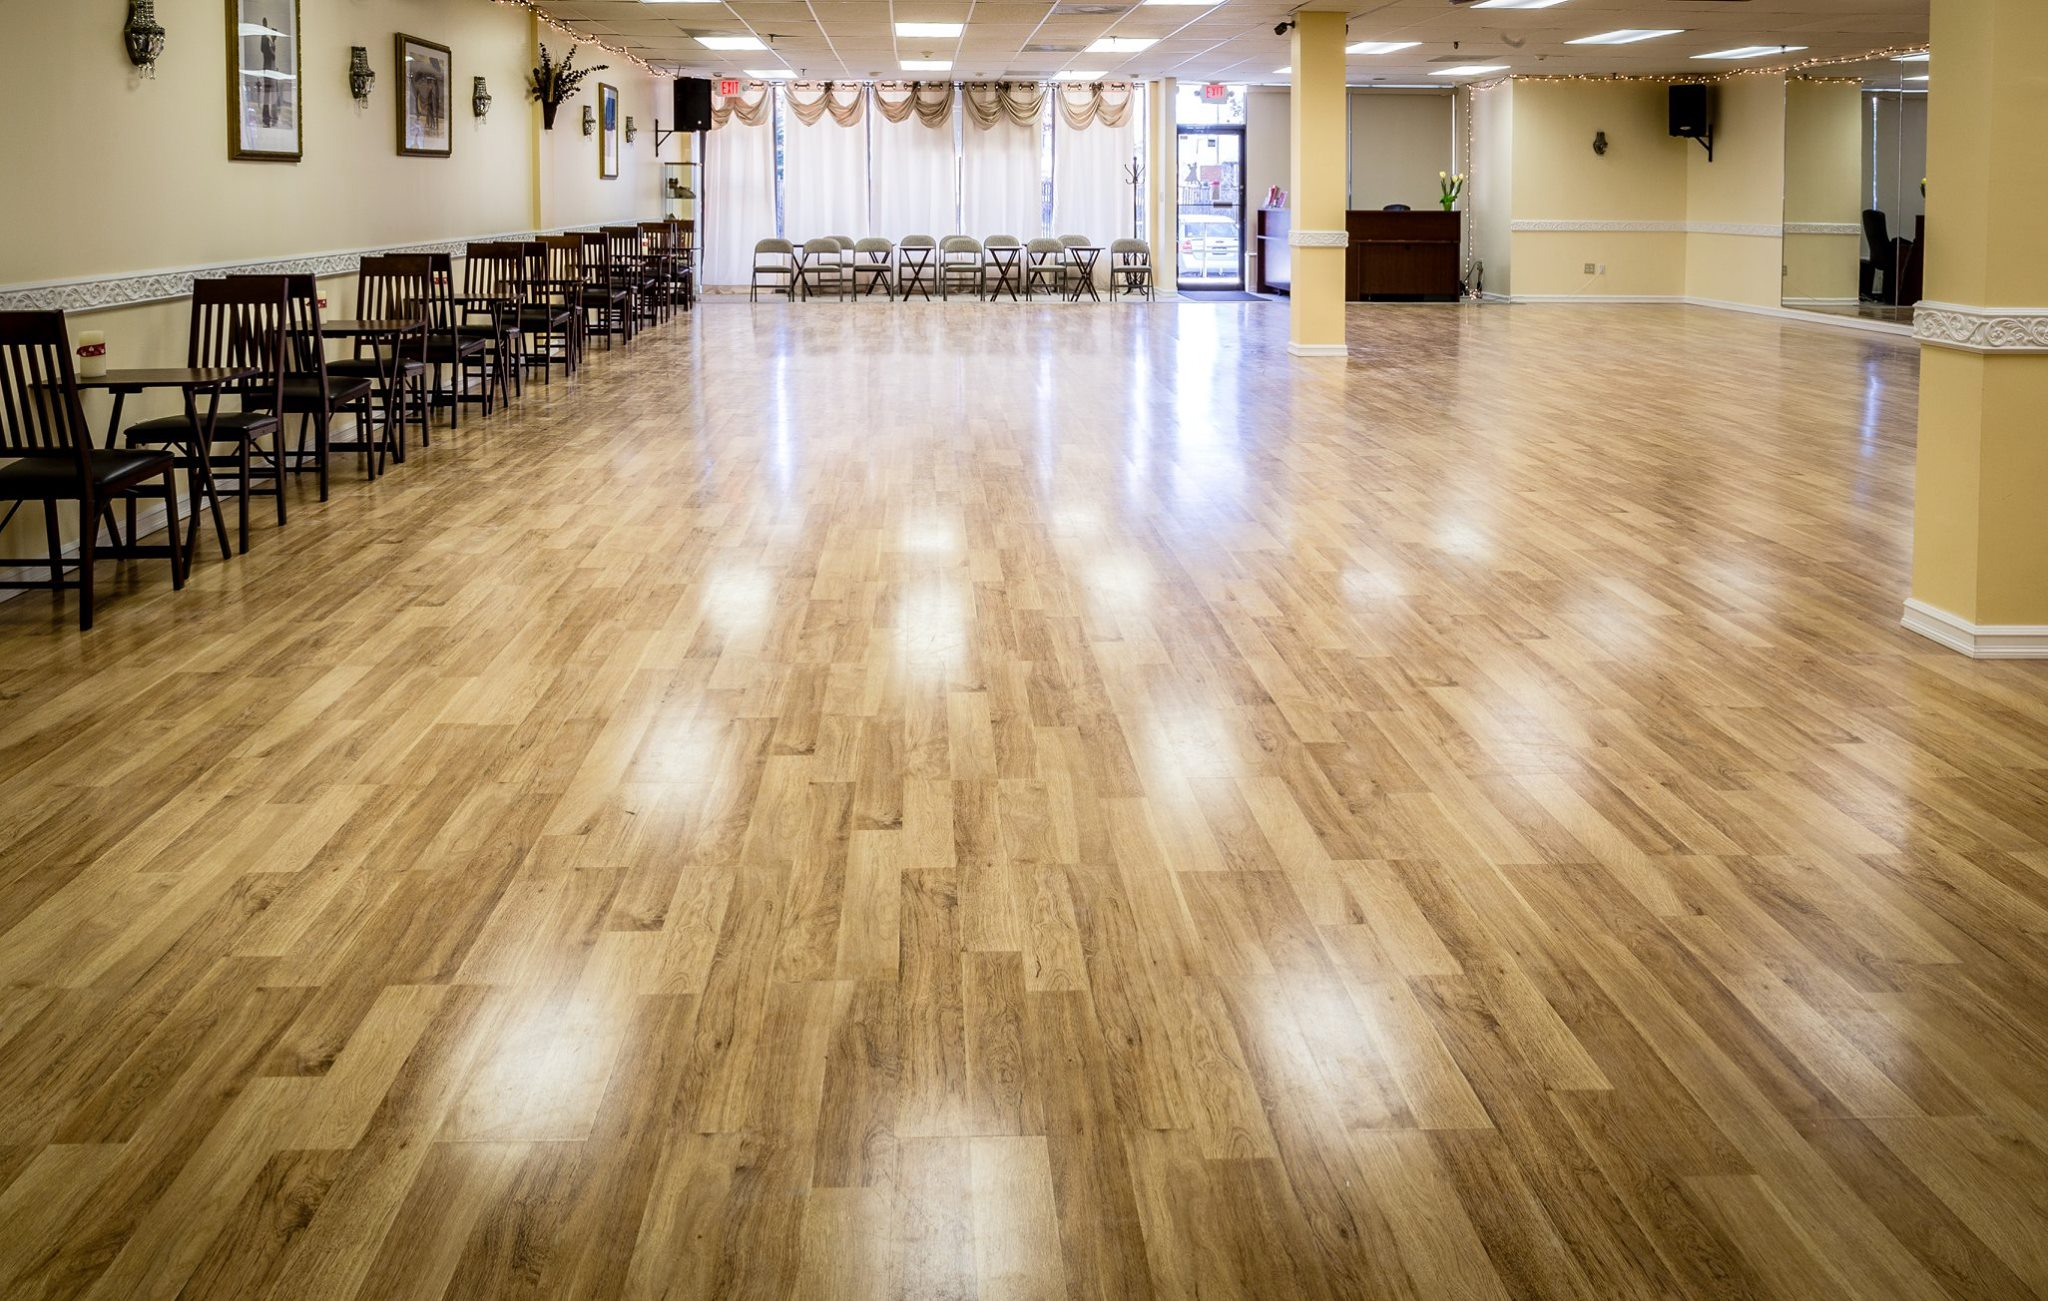 Ballroom Facto Dance Studio Venue For Rent In Patchogue